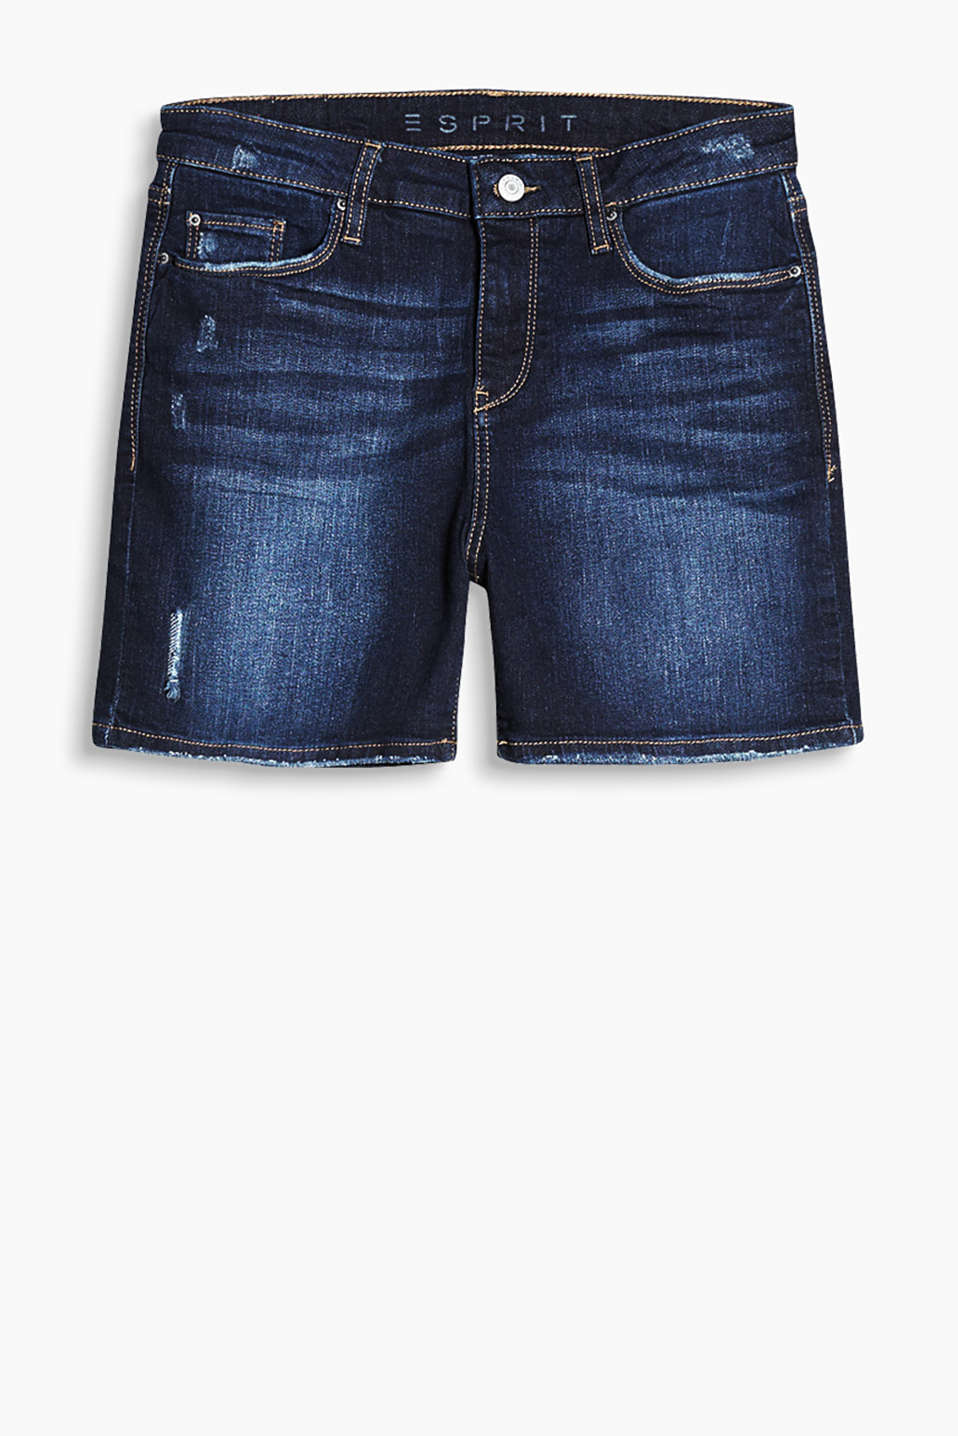 With a vintage finish: Stretch cotton denim shorts